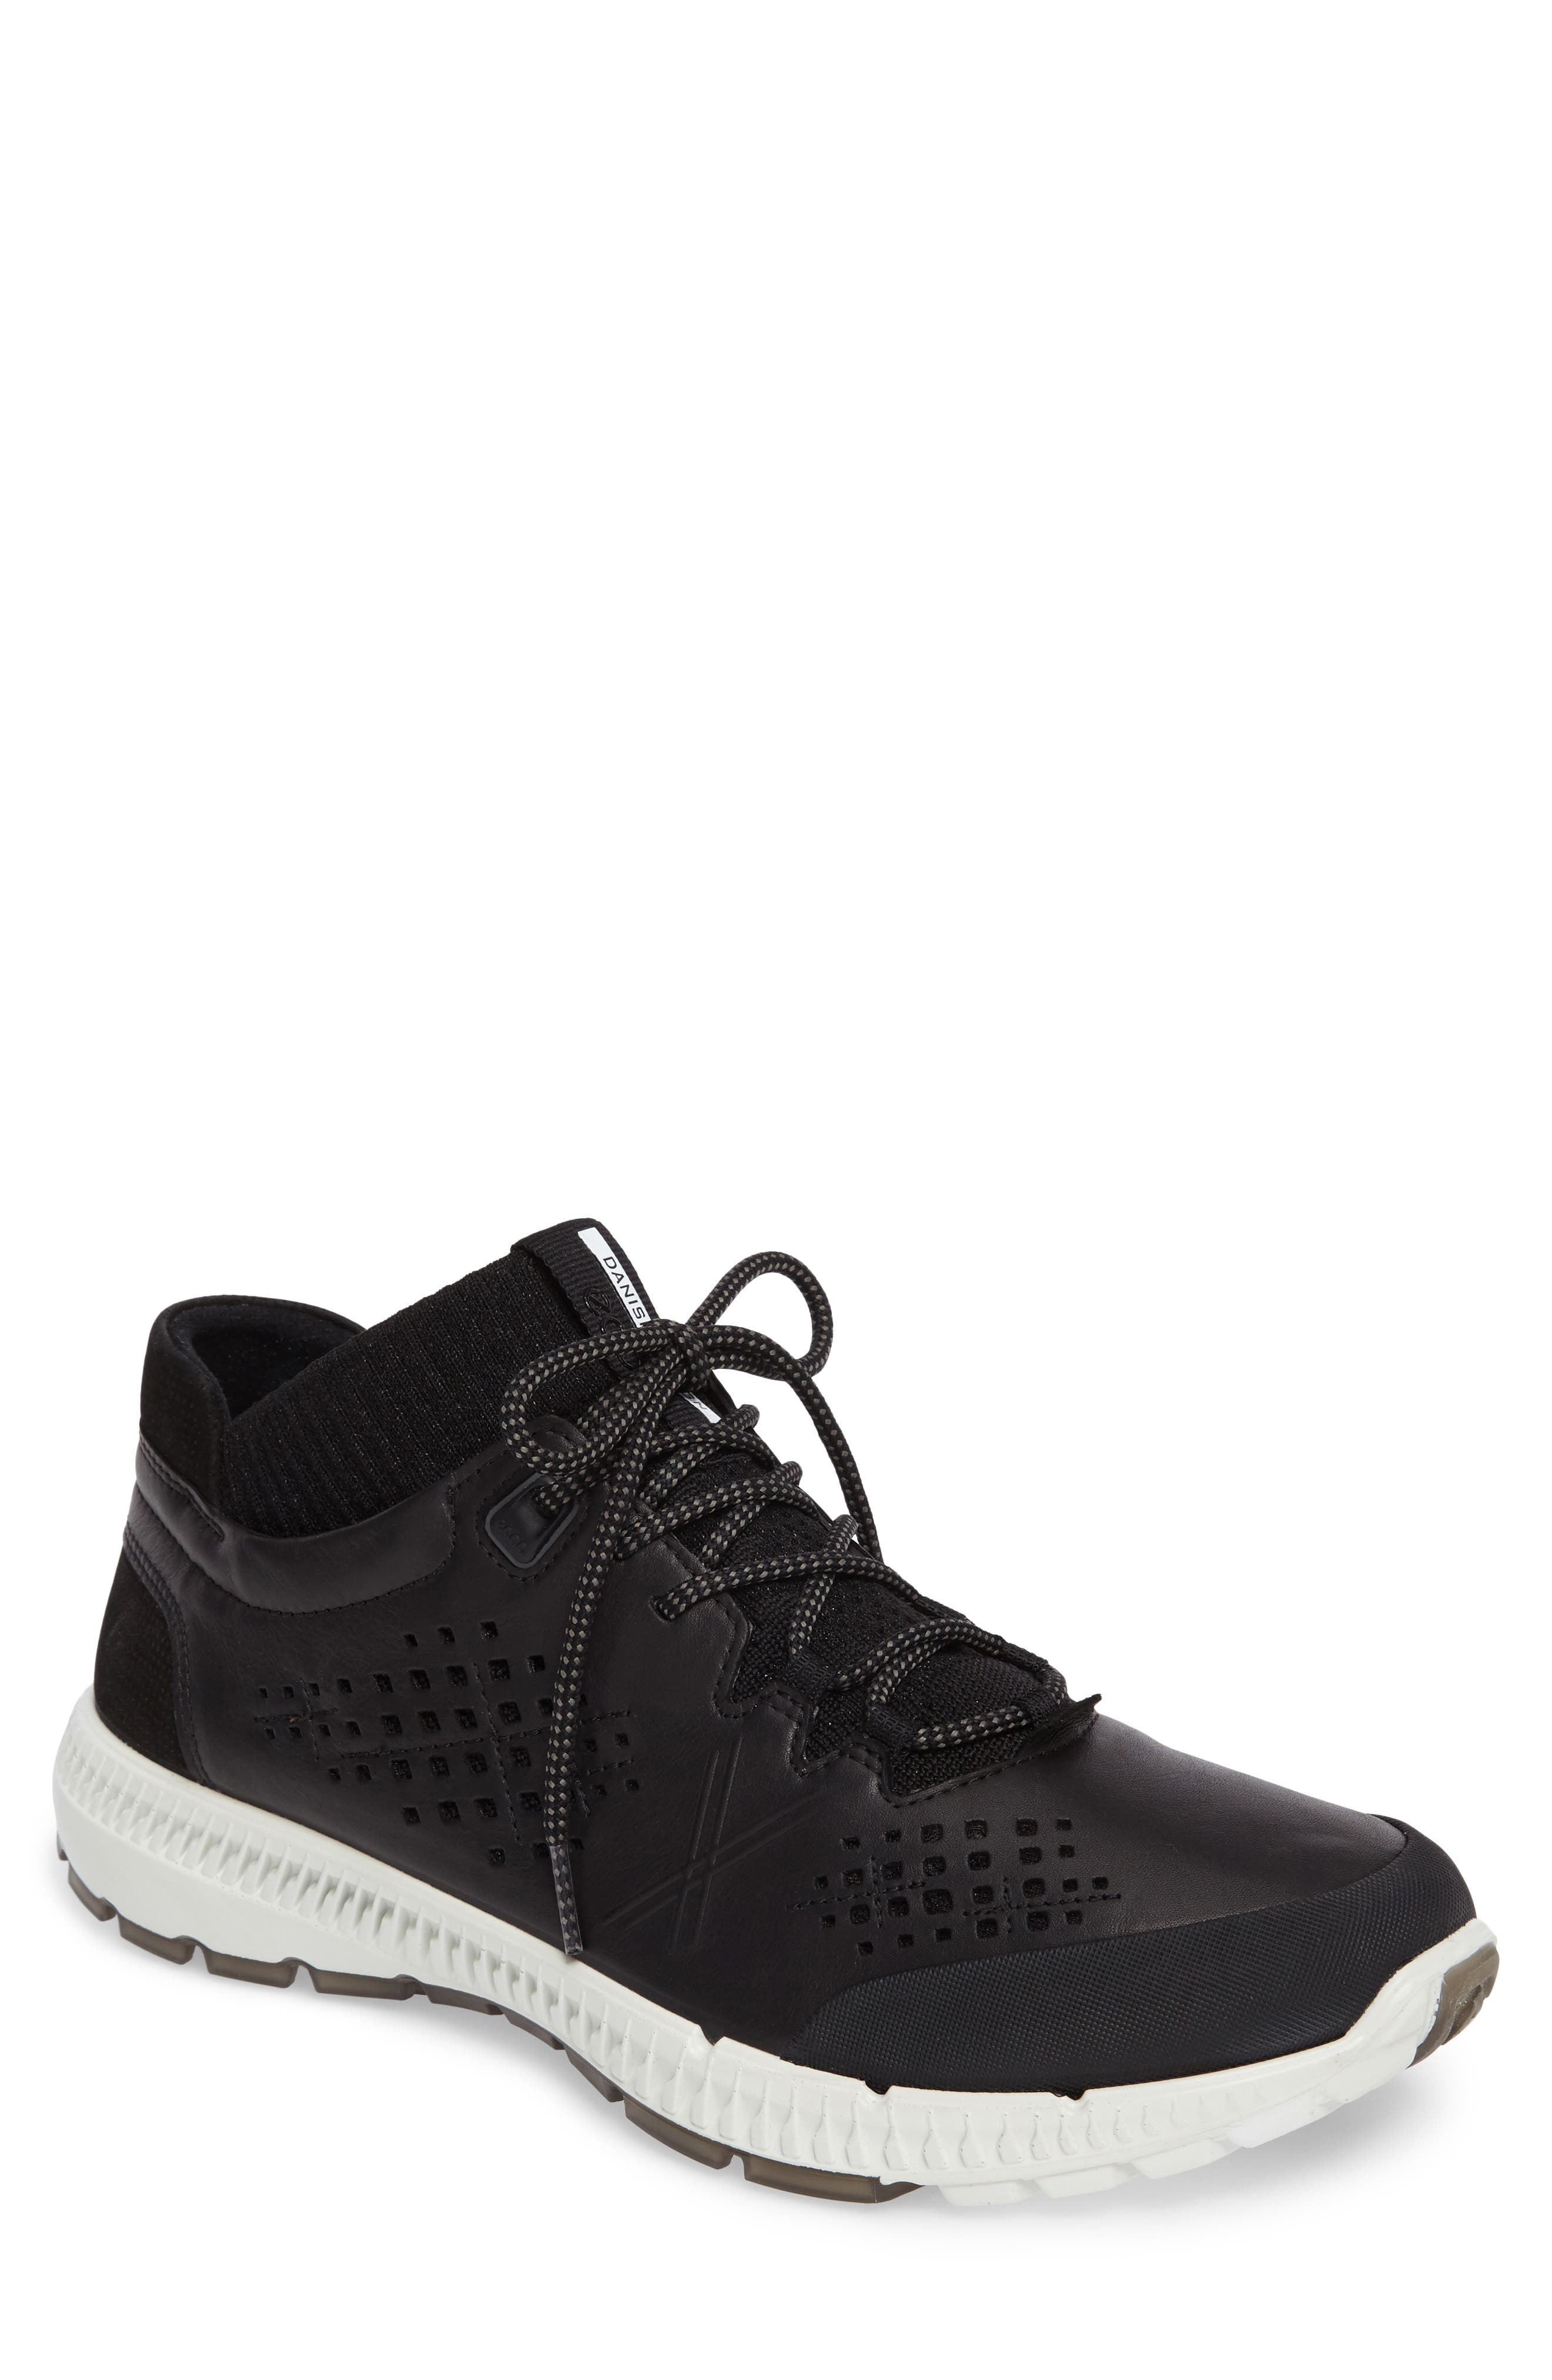 Intrinsic Mid Sneaker,                         Main,                         color, 001